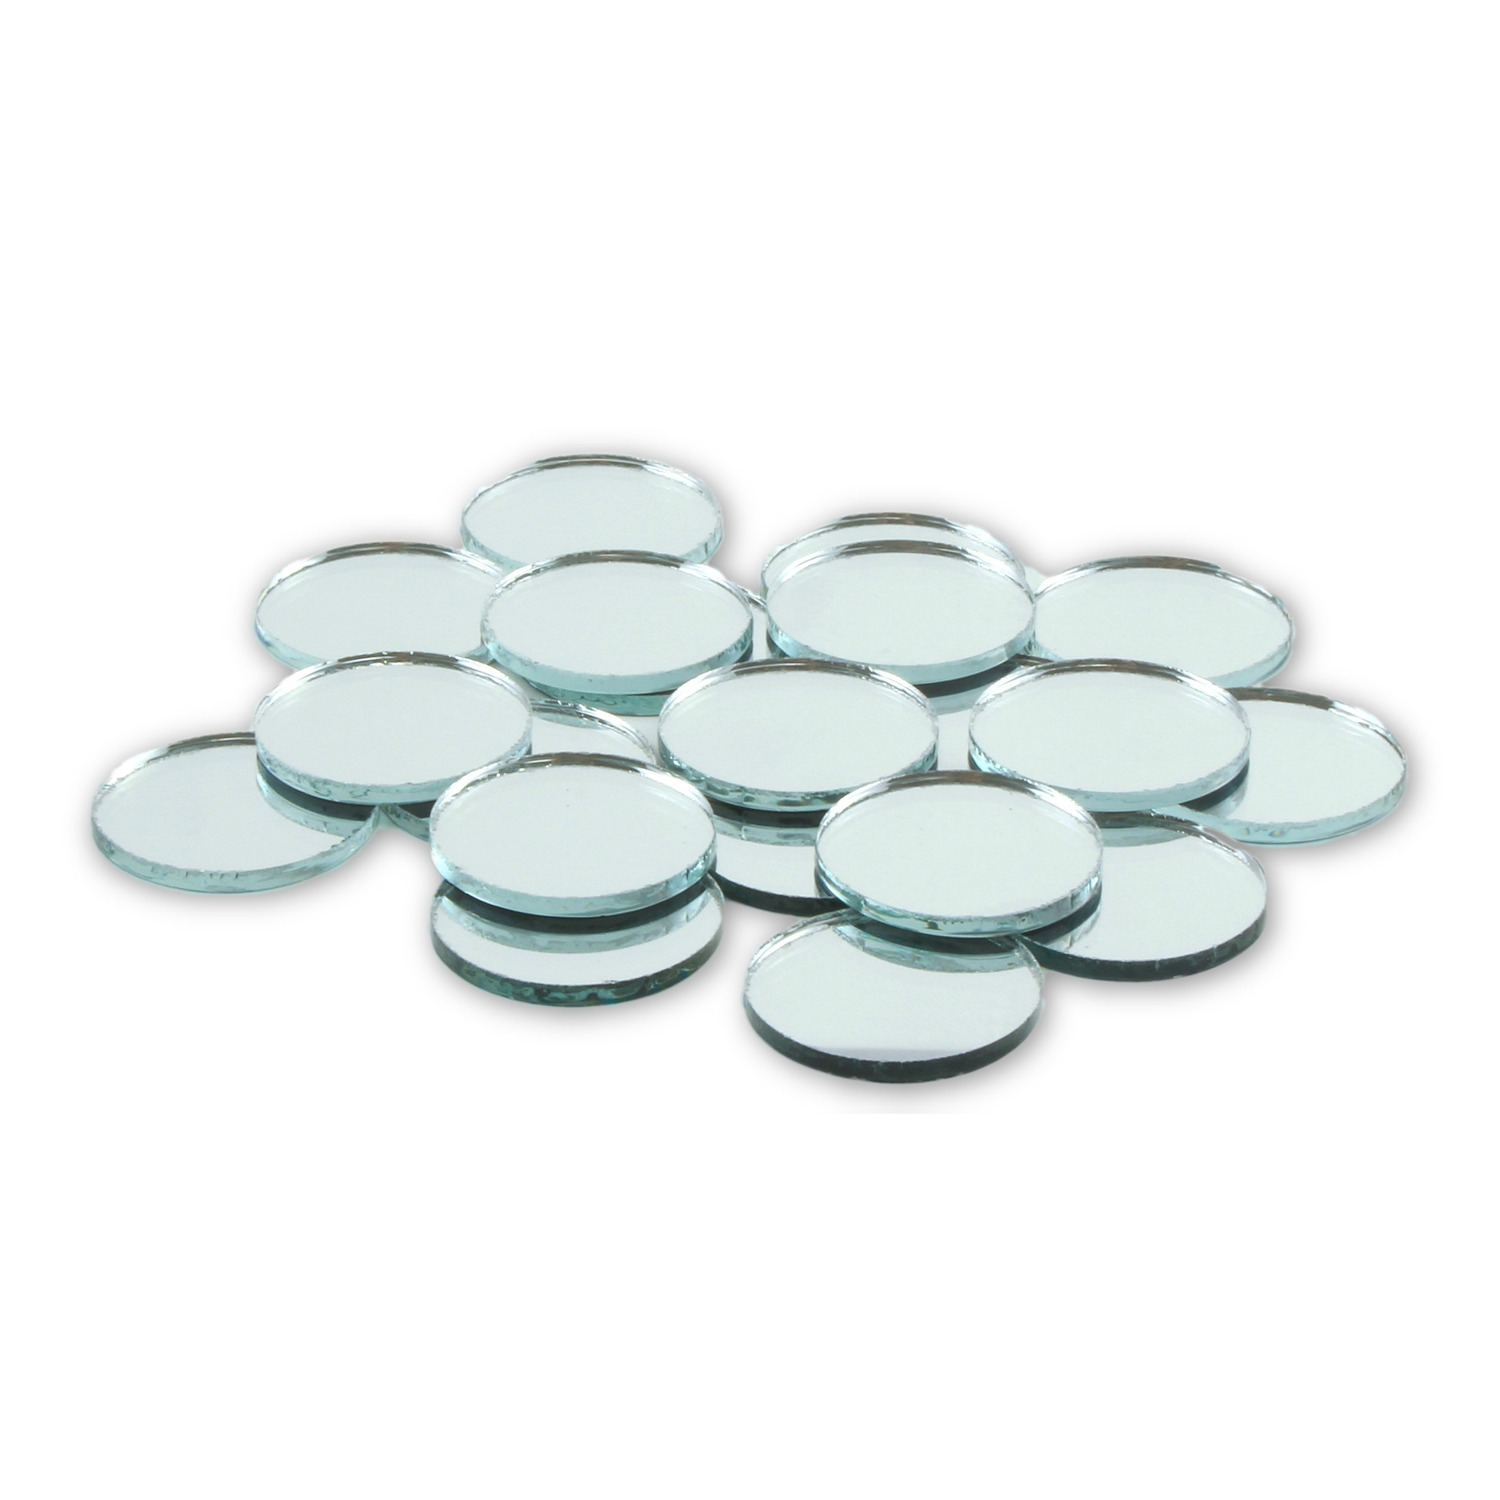 1 Inch Small Mini Round Craft Mirrors Bulk 100 Pieces Mirror Mosaic Tiles Of 4free Shipping See More